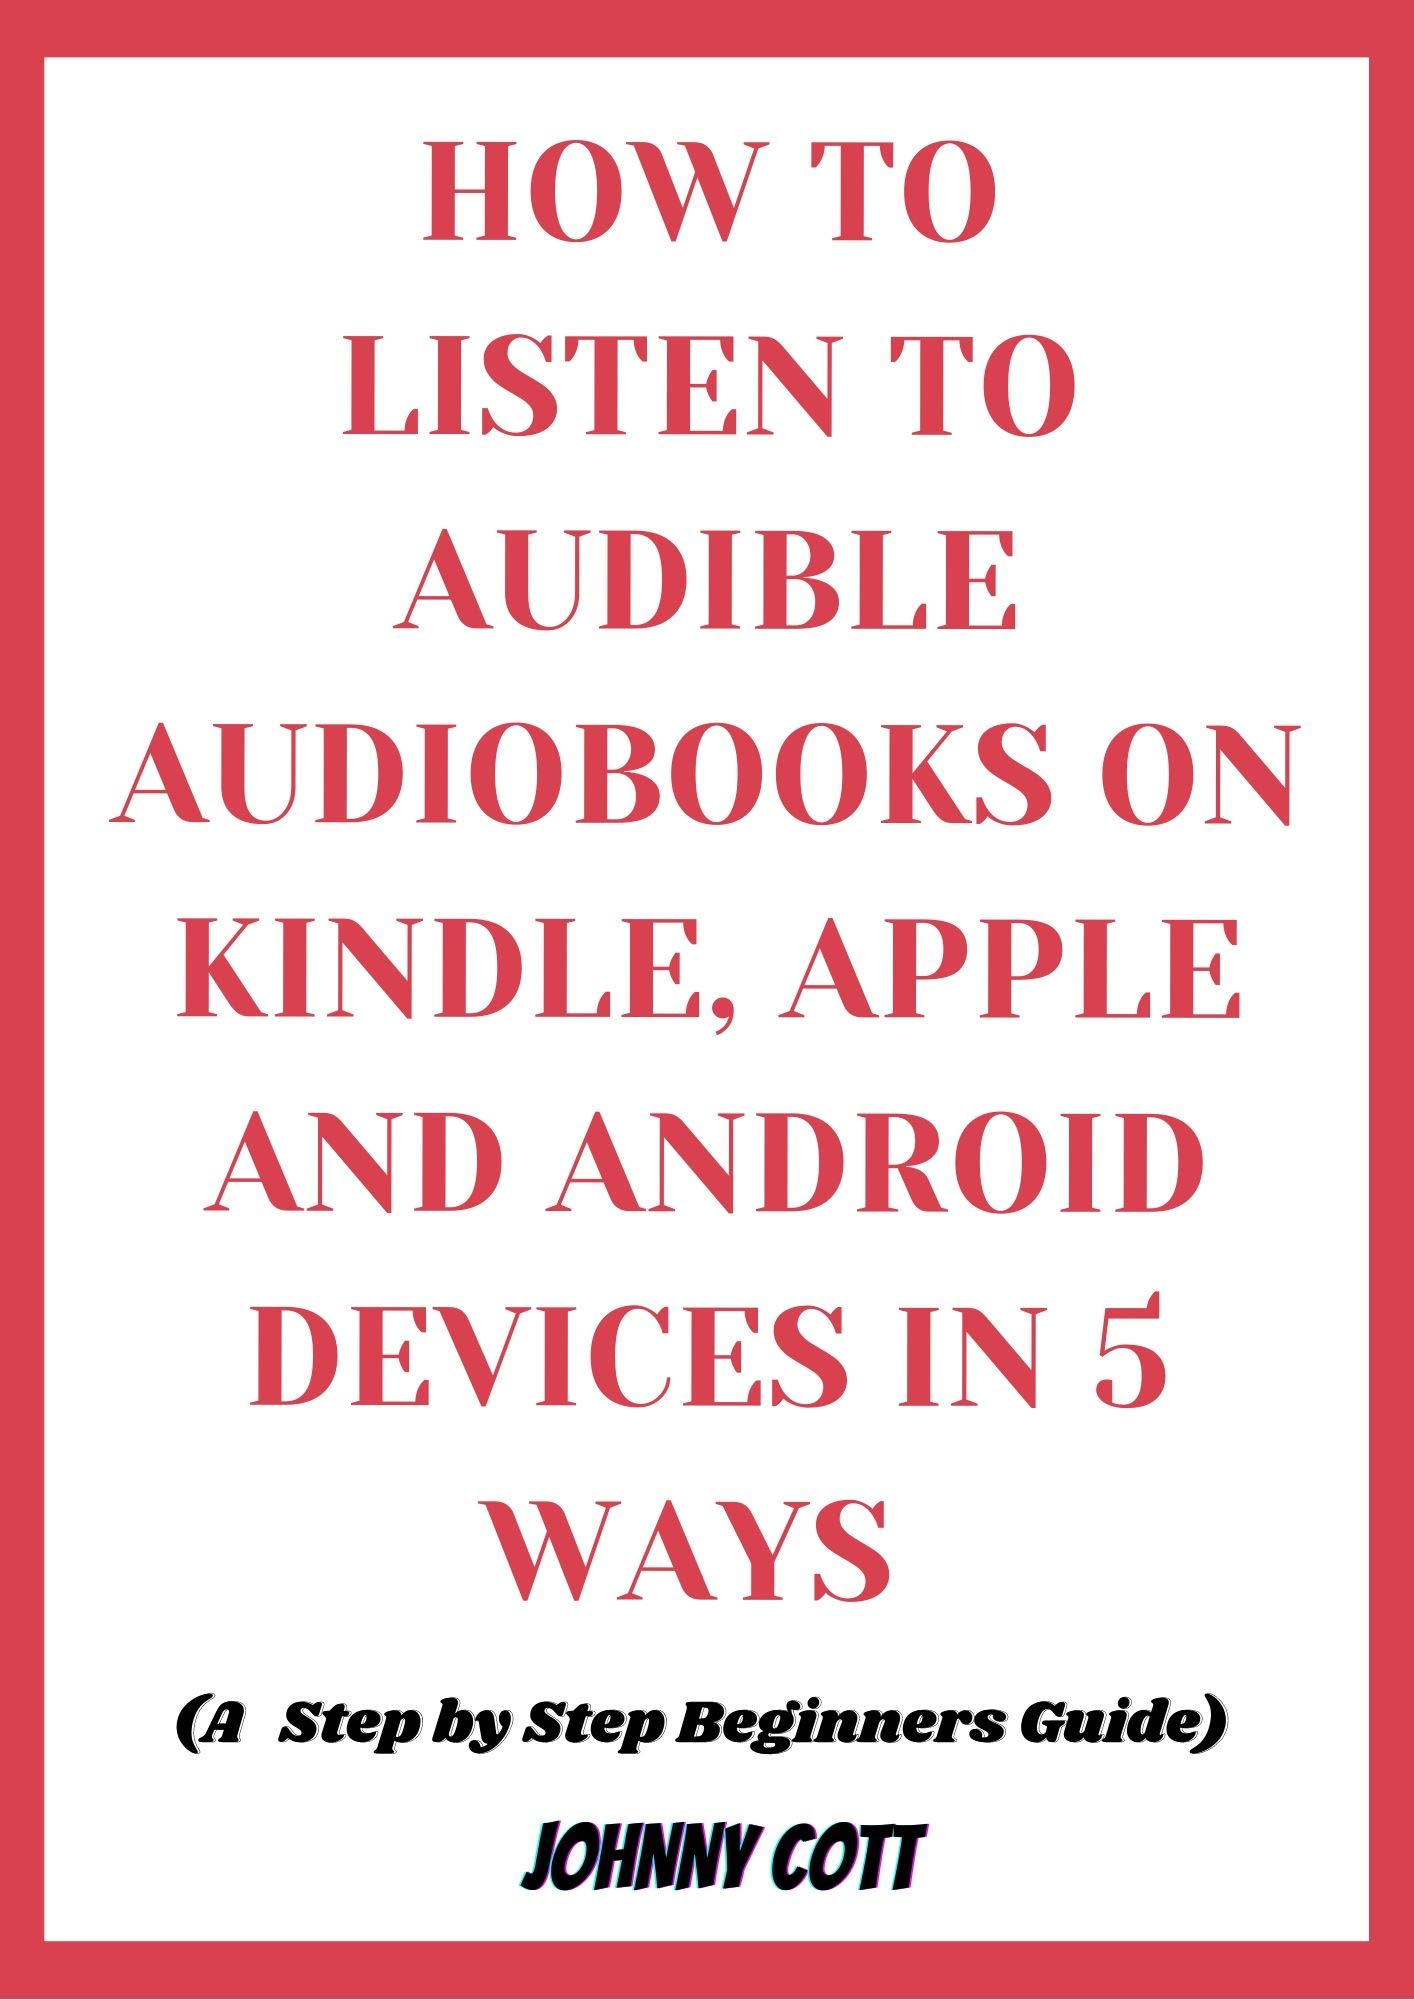 HOW TO LISTEN TO AUDIBLE AUDIOBOOKS ON KINDLE, iPHONE AND ANDROID DEVICES IN 5 WAYS : Step by Step Beginners Guide to Amazon Audiobooks: Tips, Tricks and Hacks in Seconds (how-to Book 1)